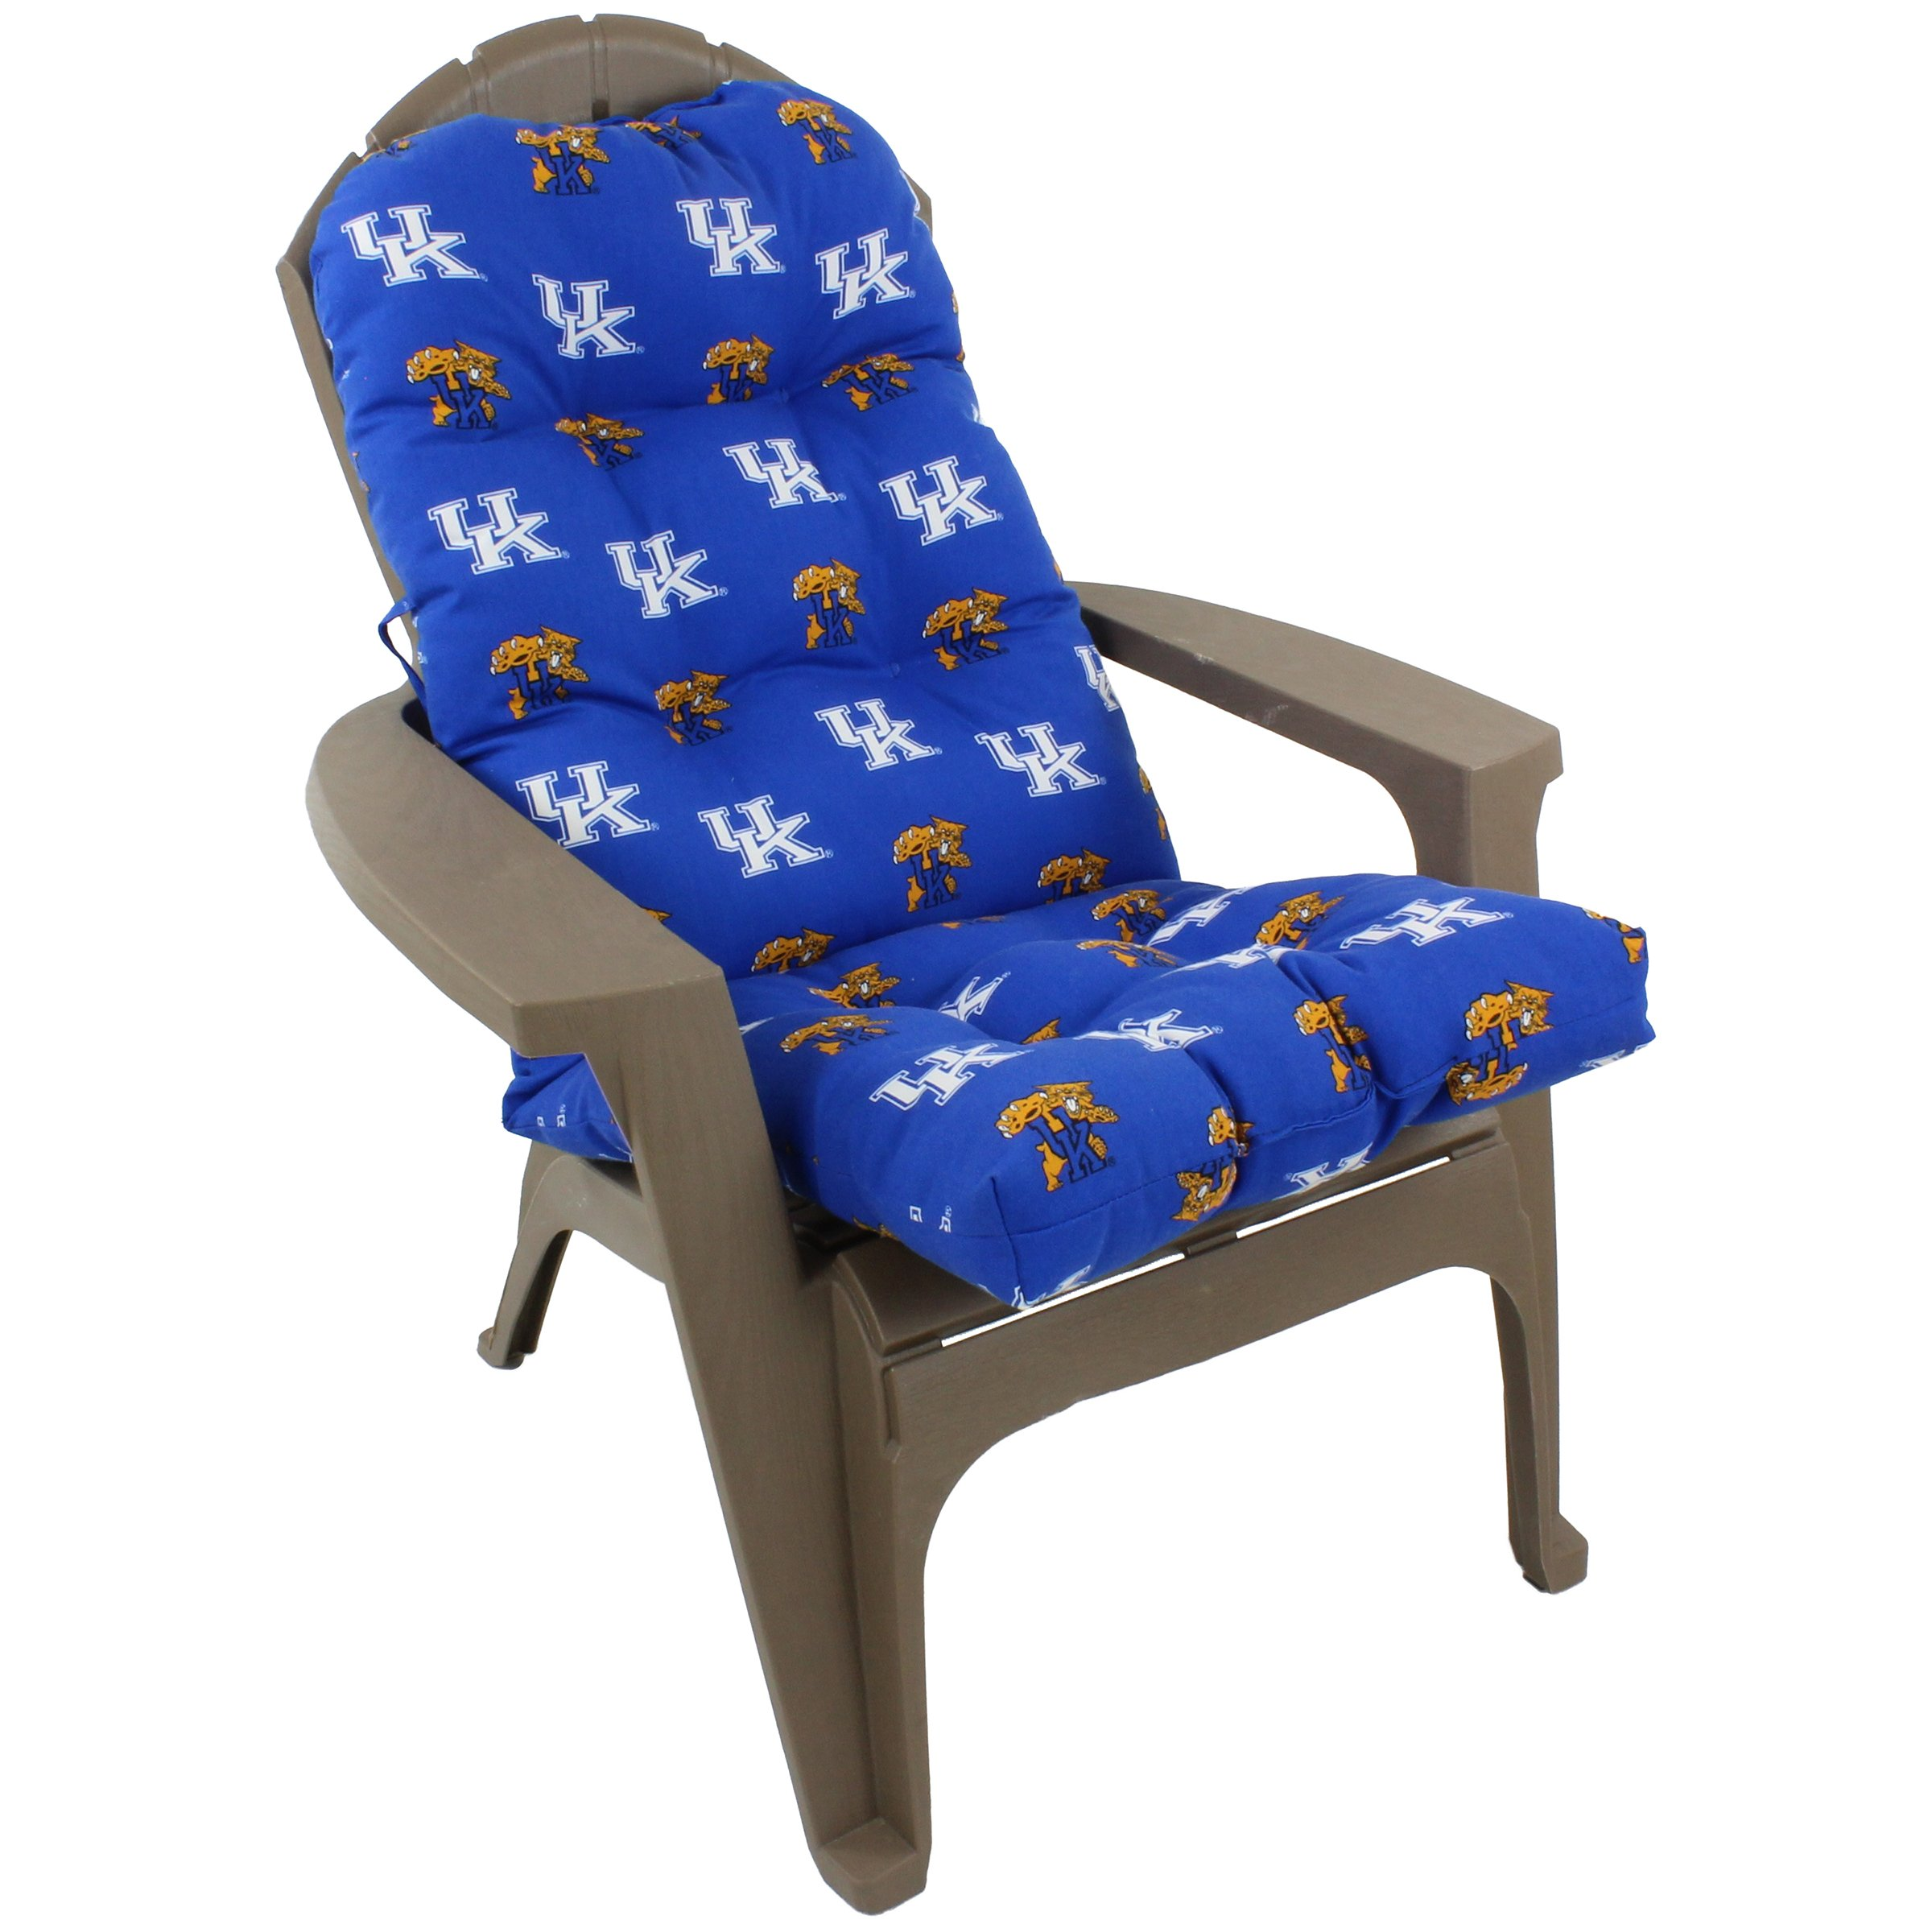 College Covers Kentucky Wildcats Adirondack Cushion by College Covers (Image #3)